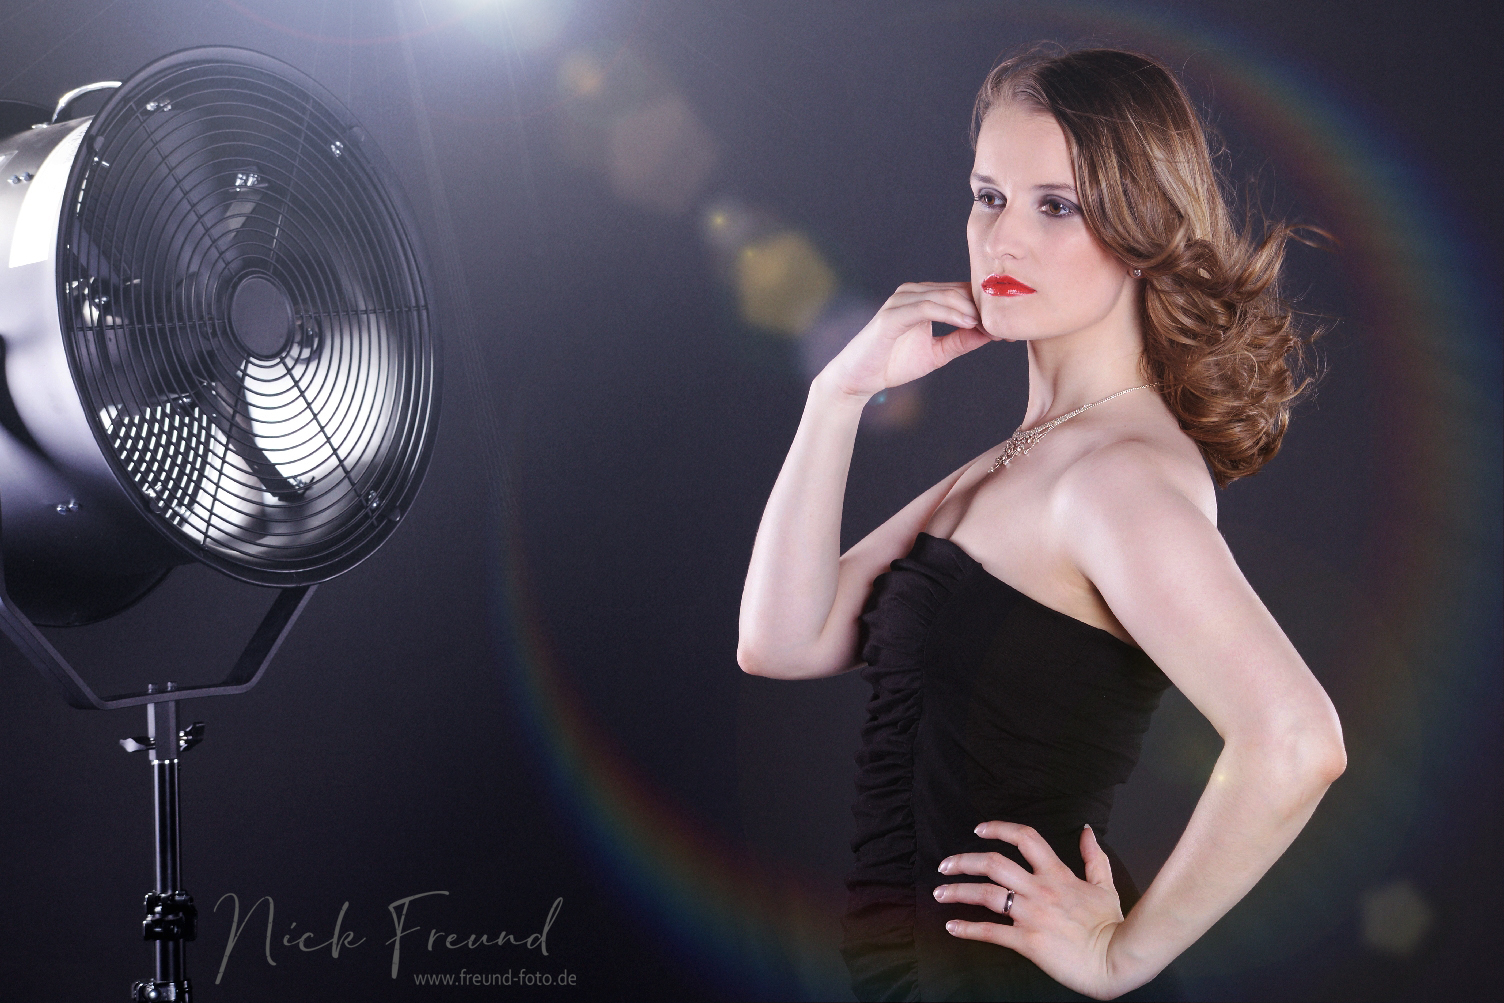 professionelles model fotoshooting in oberasbach